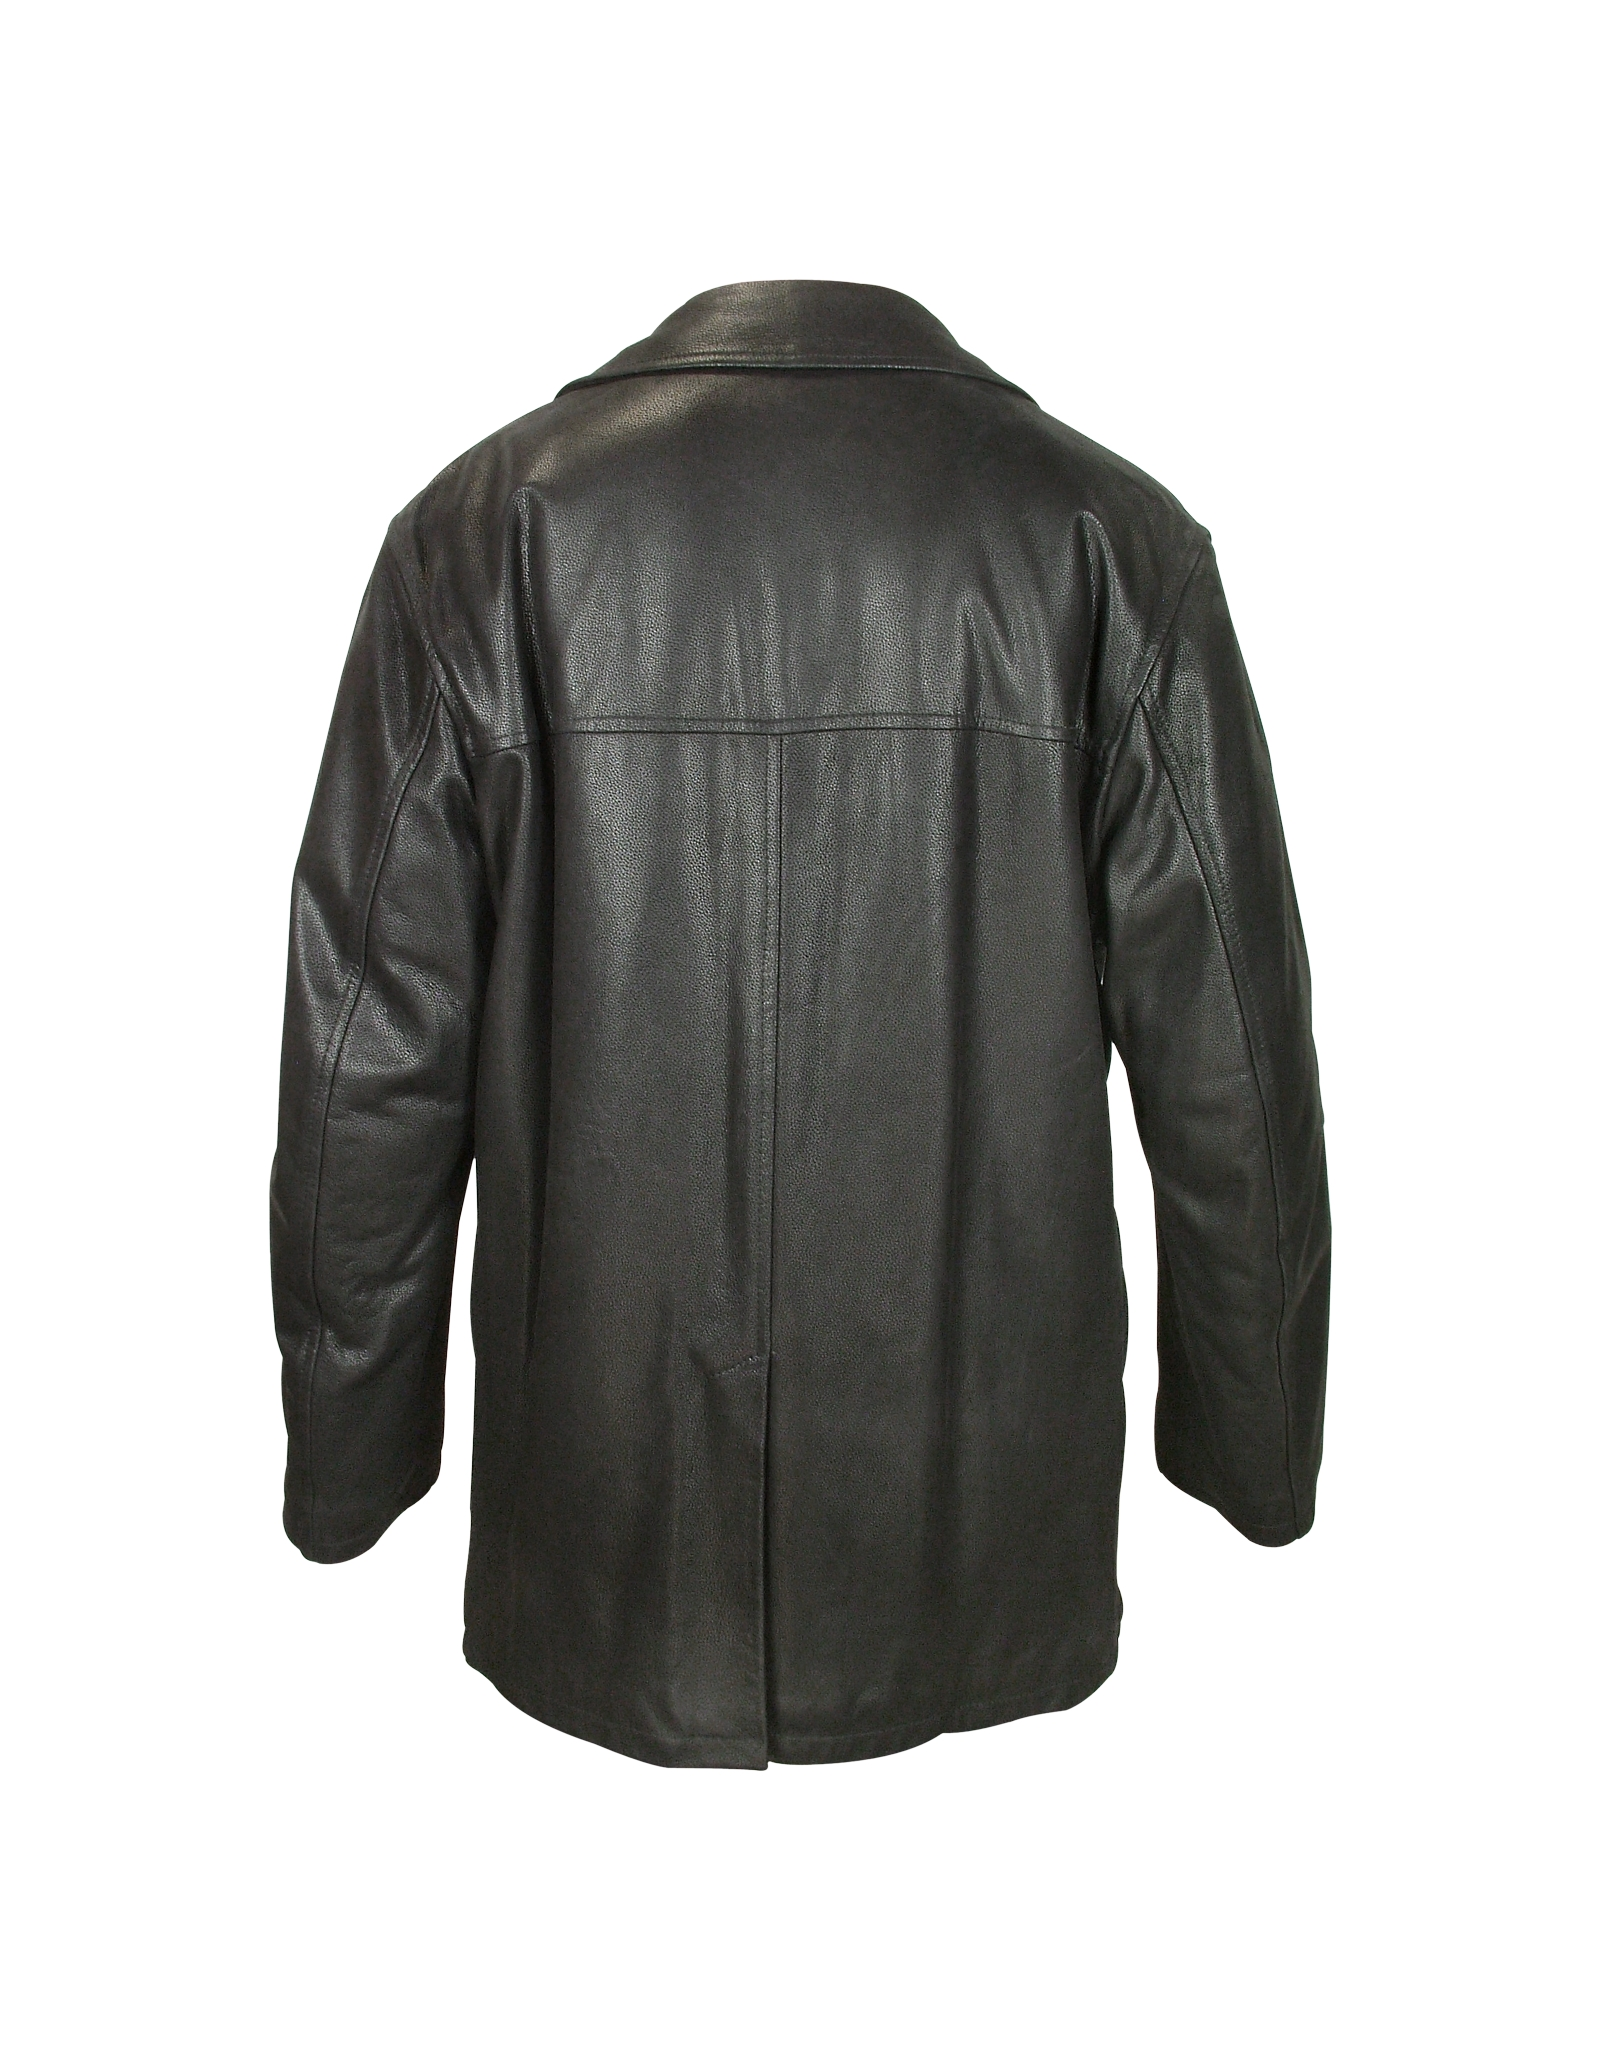 lyst forzieri mens black leather jacket in black for men